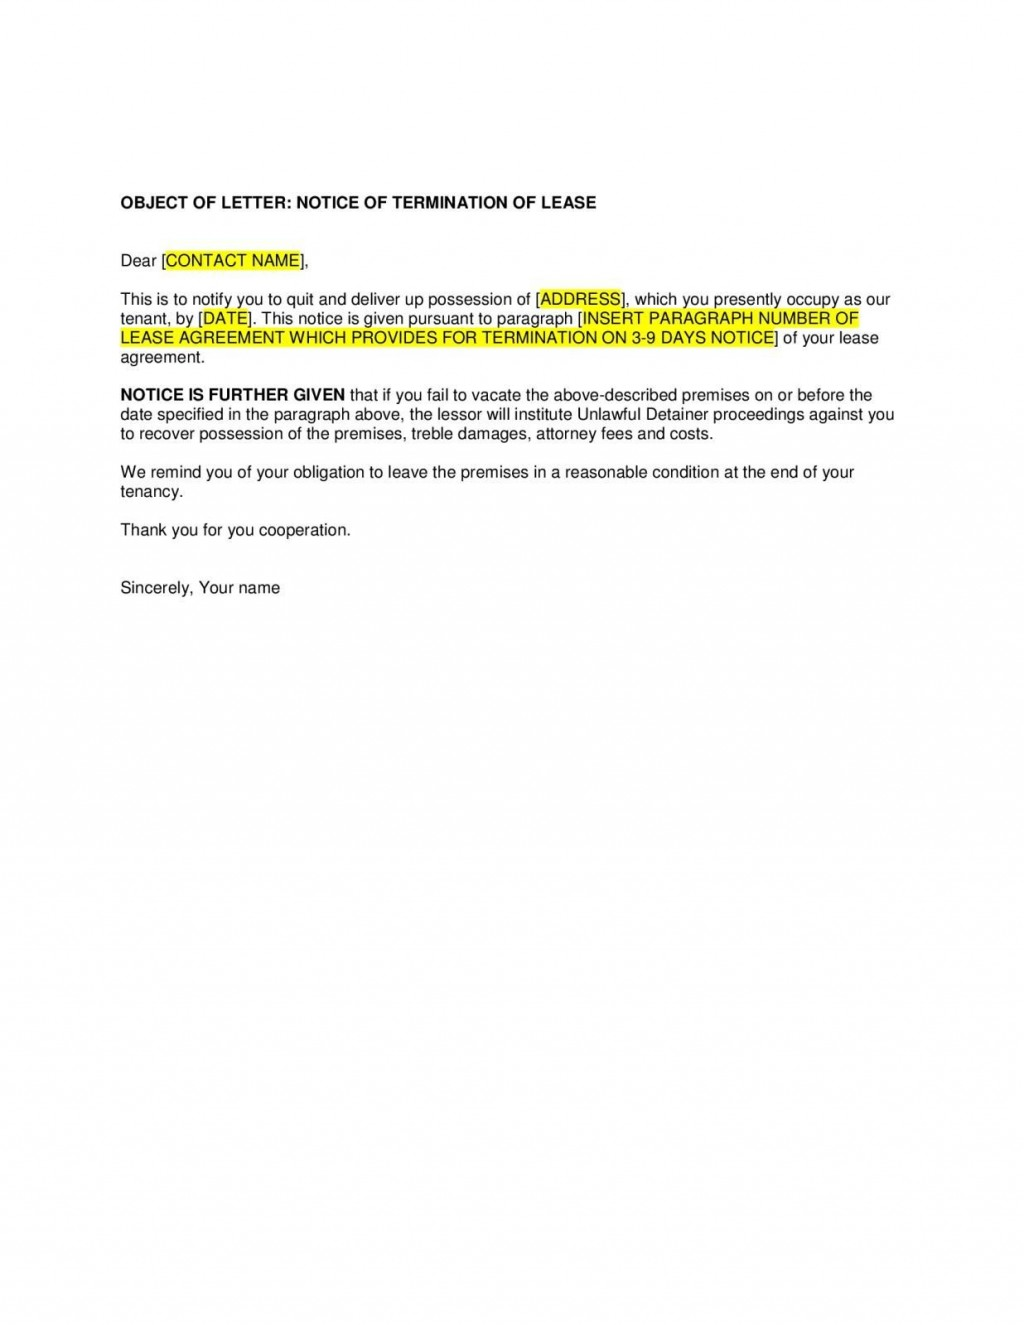 007 Shocking Sample Letter For Terminating A Lease Agreement Concept  To End Tenancy From Landlord CancellingLarge